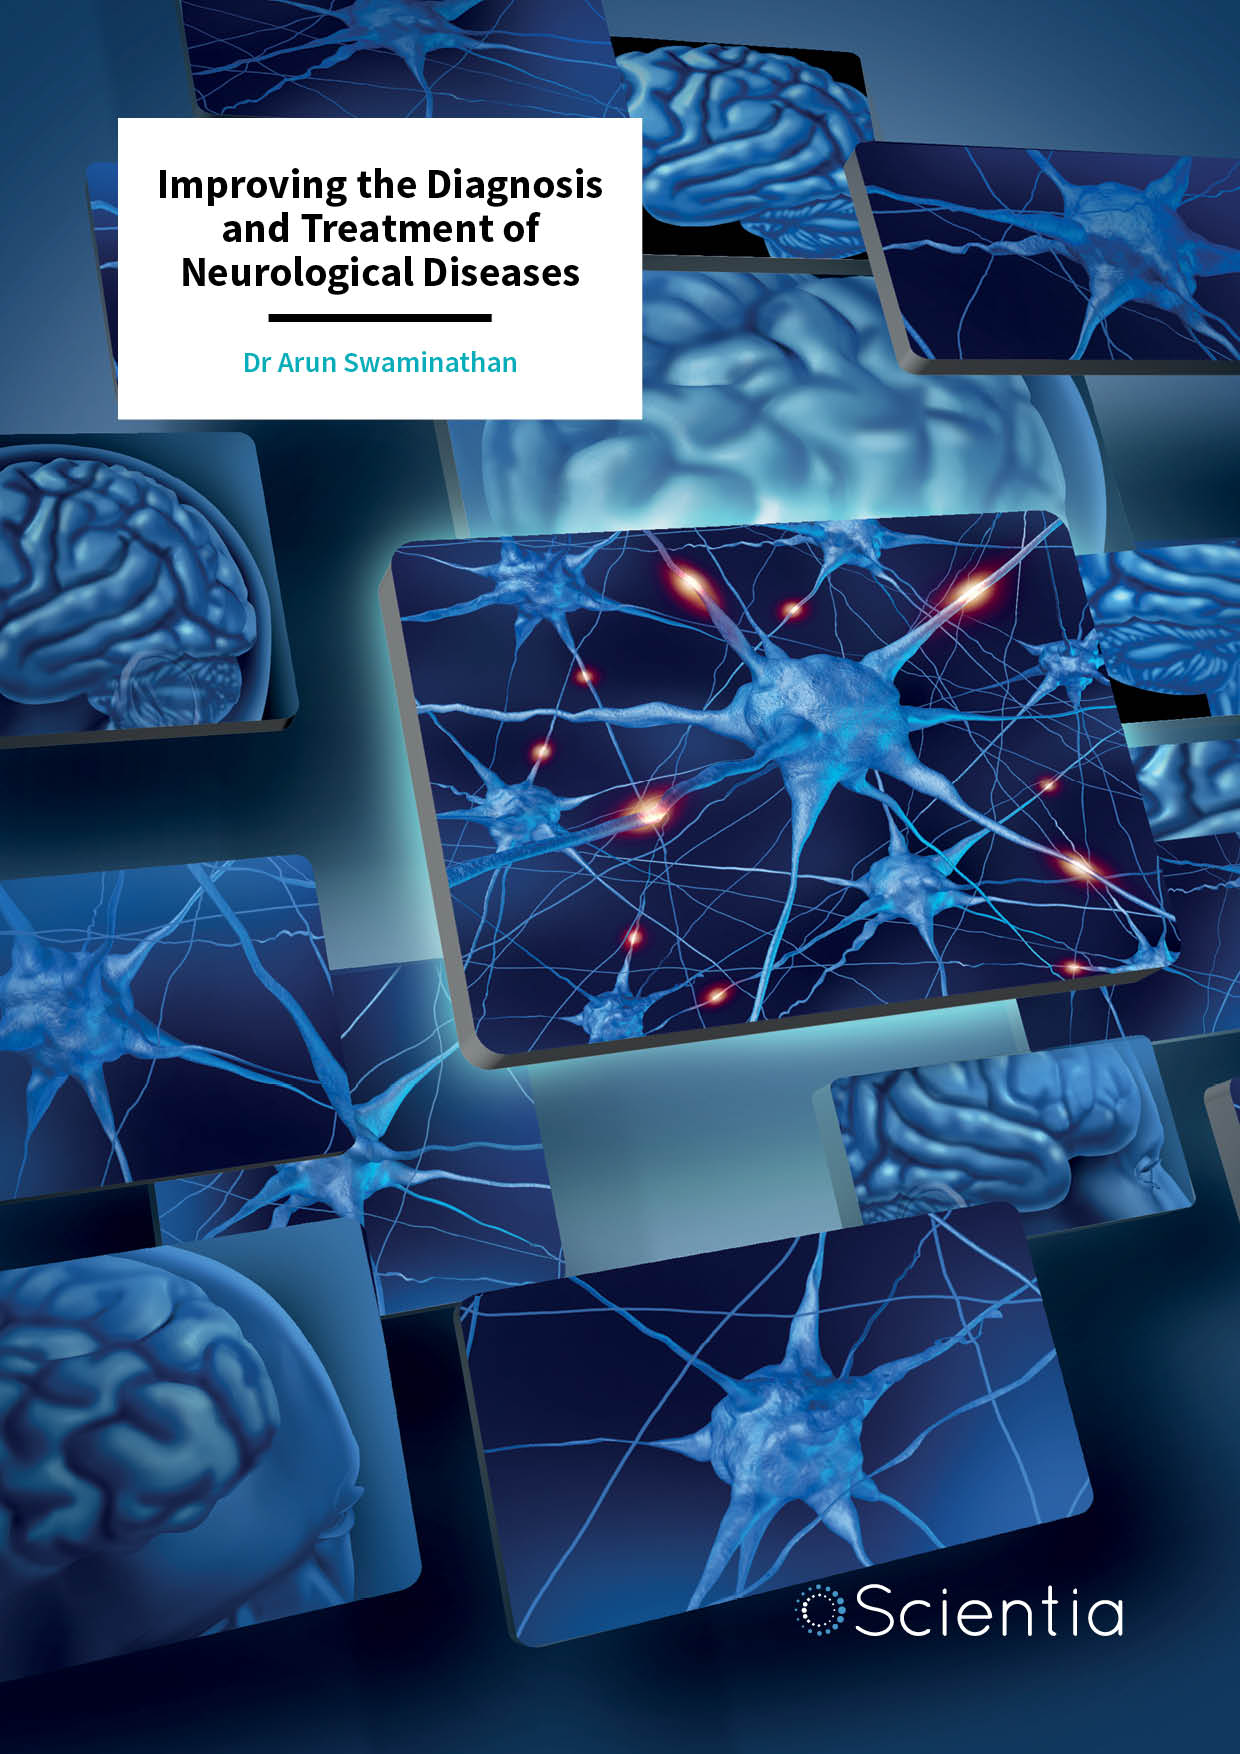 Dr Arun Swaminathan – Improving the Diagnosis and Treatment of Neurological Diseases